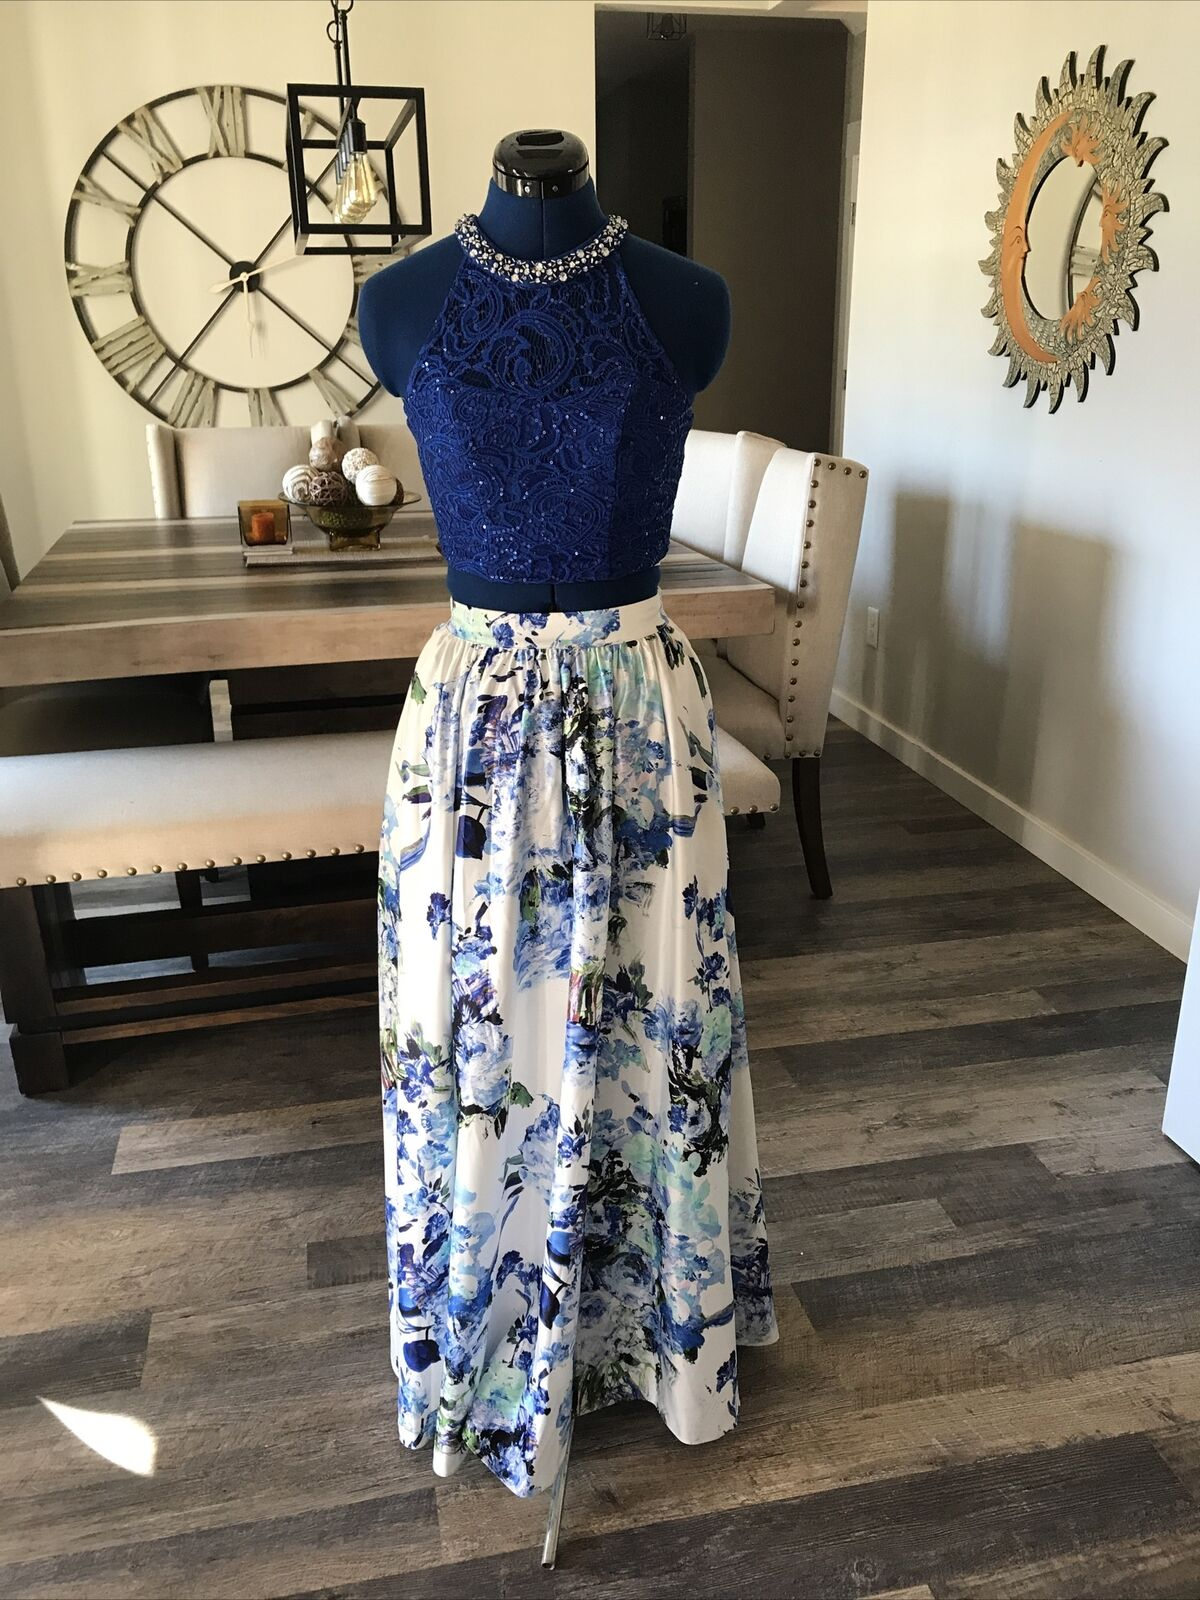 Women's Formal Dress Size 1 By Xtra Ordinary Blue And White Beaded Top